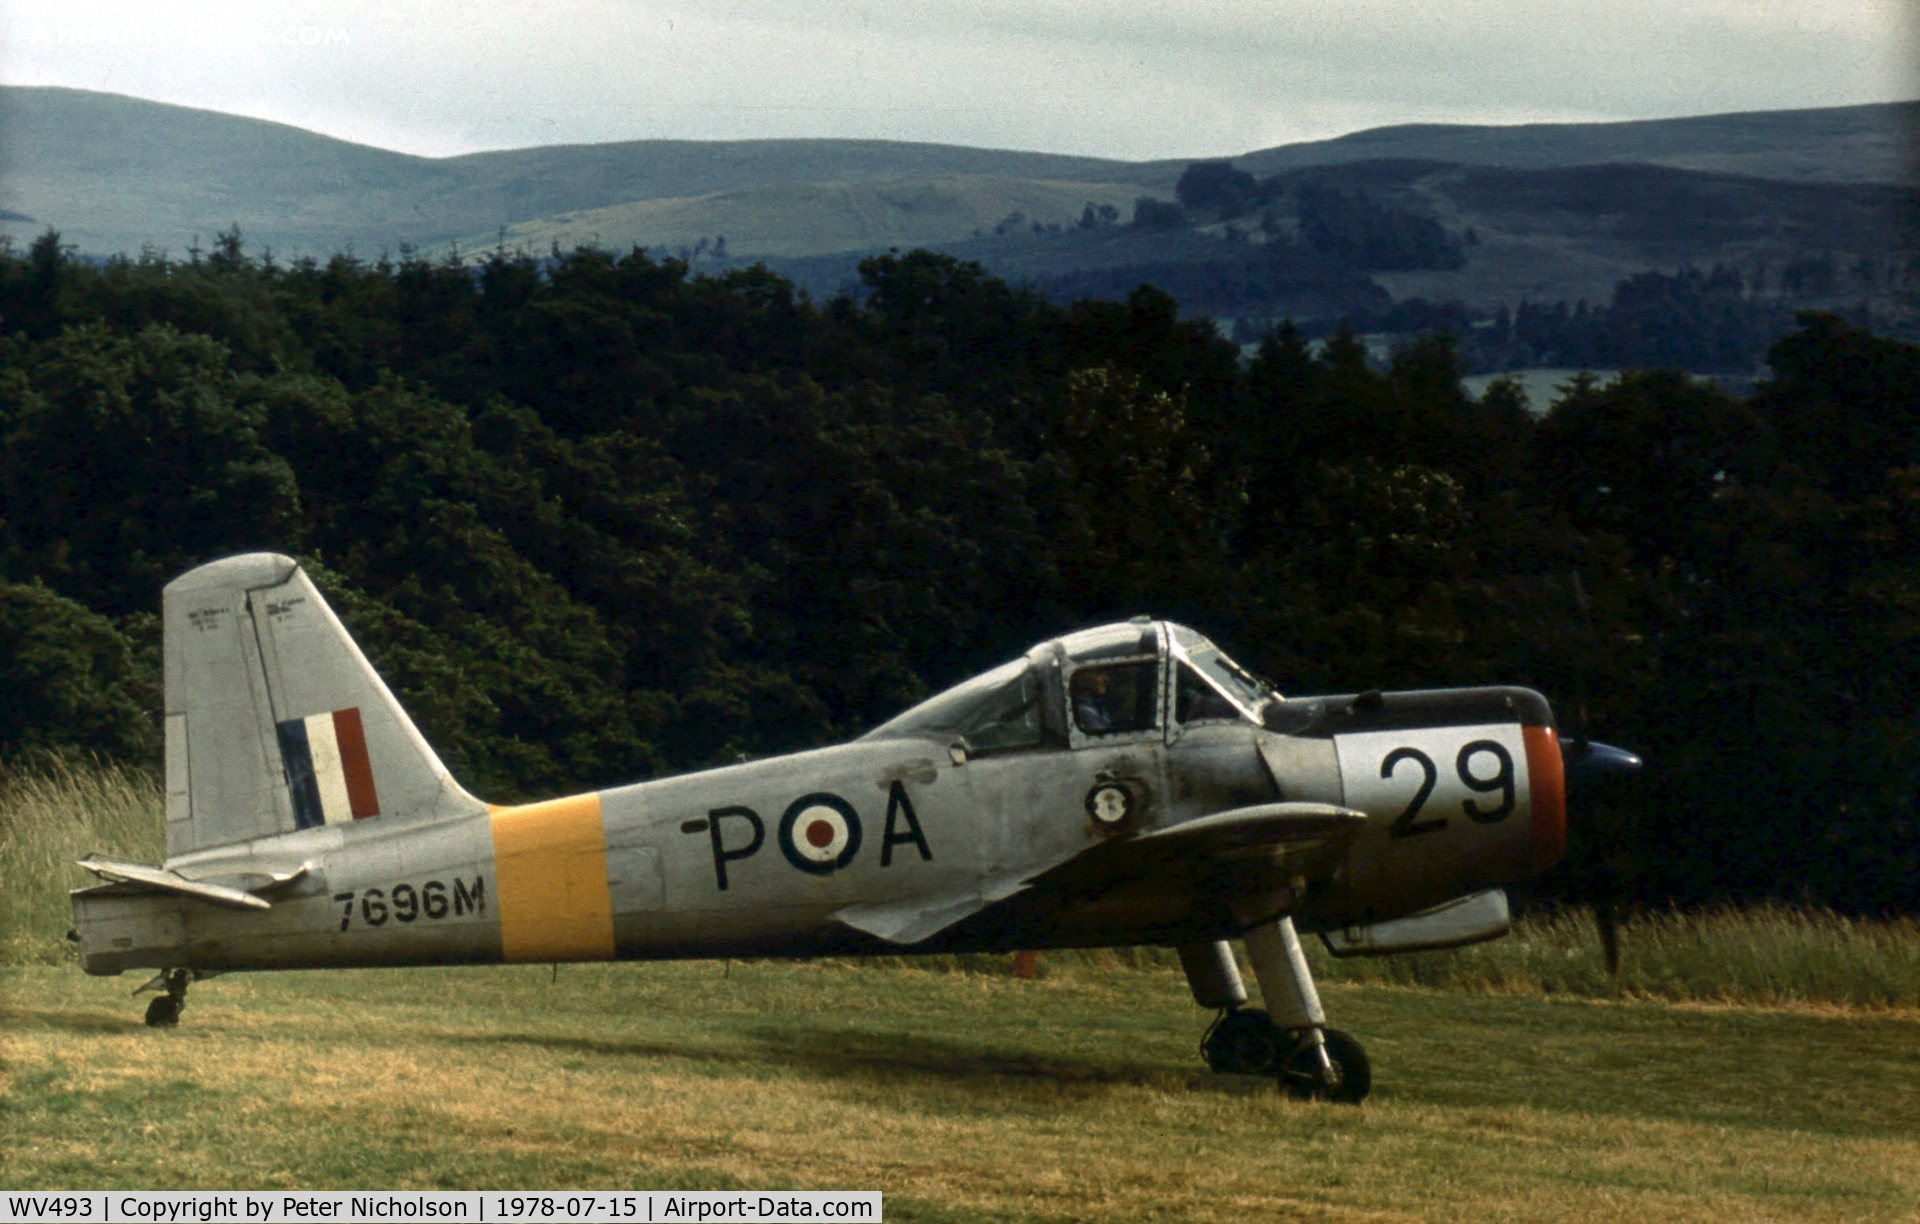 WV493, 1953 Percival P-56 Provost T.1 C/N PAC/56/056, Now in museum storage, this Provost T.1 was active at the 1978 Strathallan Open Day.